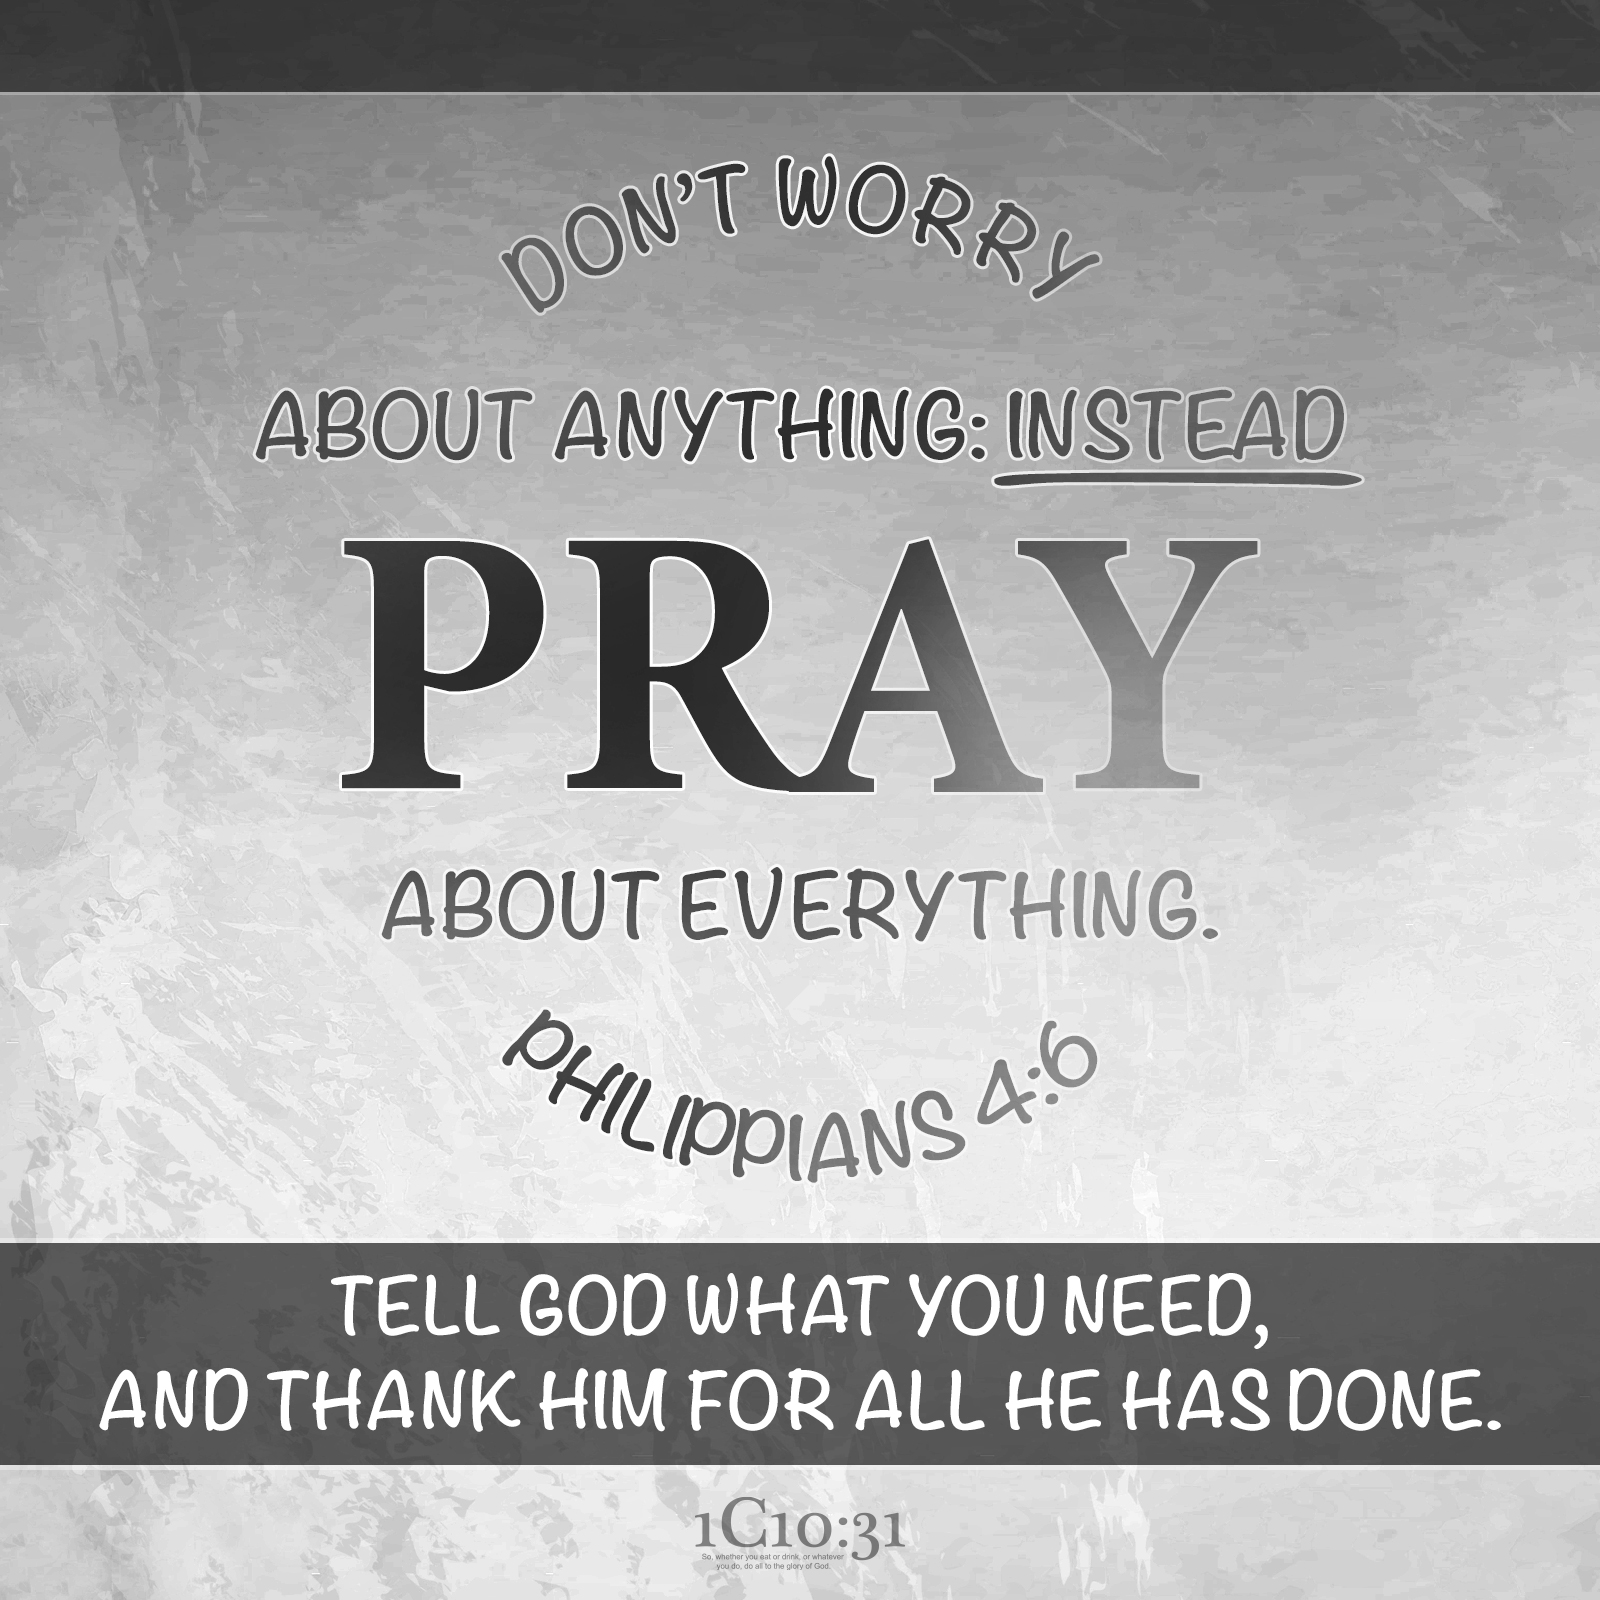 Philippians 4:6 Don't worry about anything; instead, pray about everything. Tell God what you need, and thank him for all he has done.